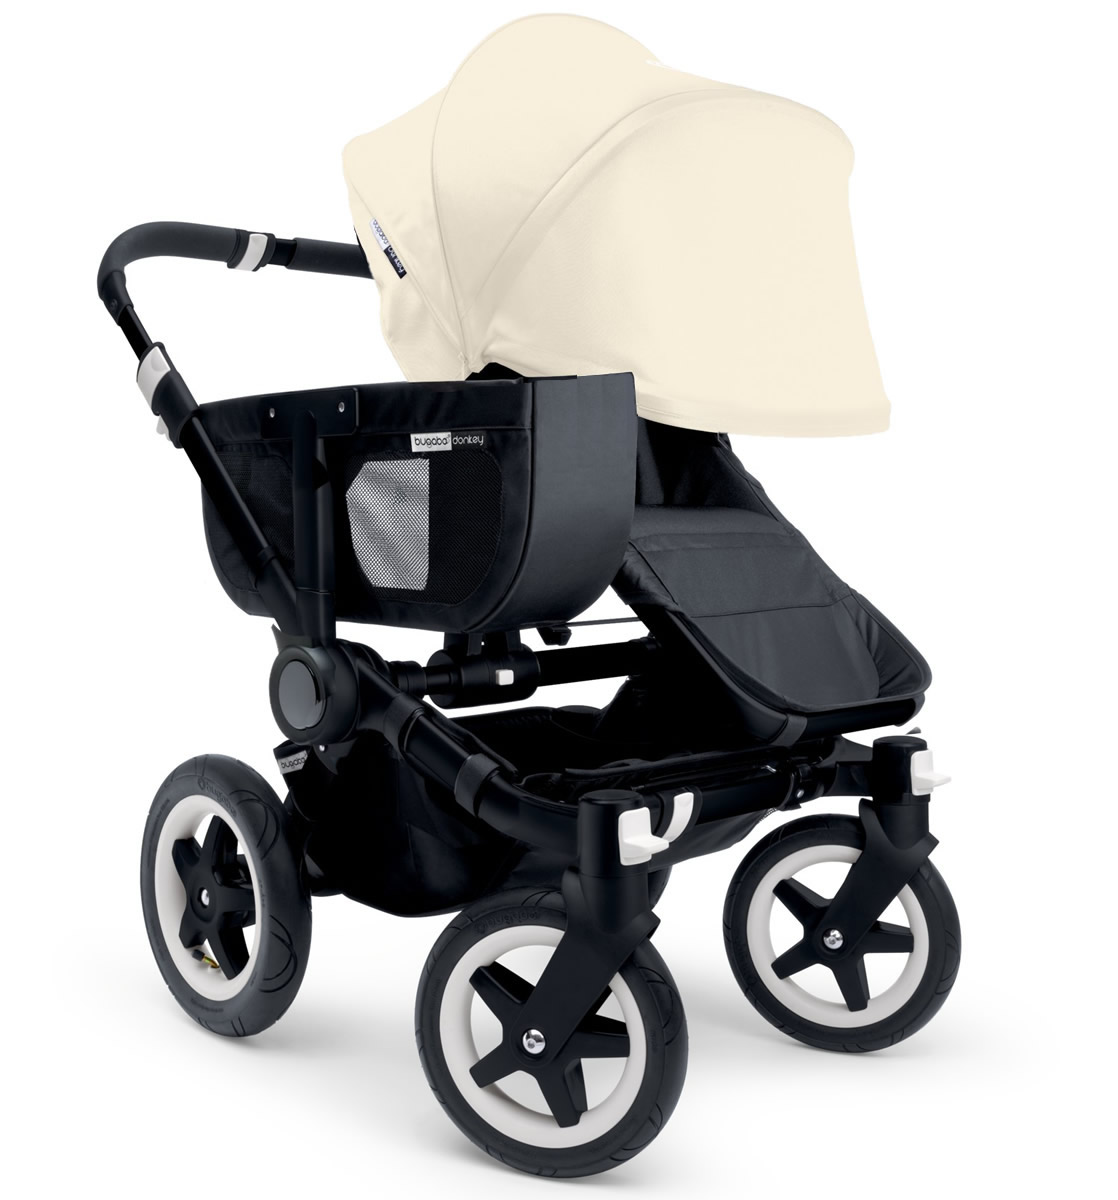 Bugaboo Donkey Mono Stroller, Extendable Canopy - 2015 - All Black/Off White